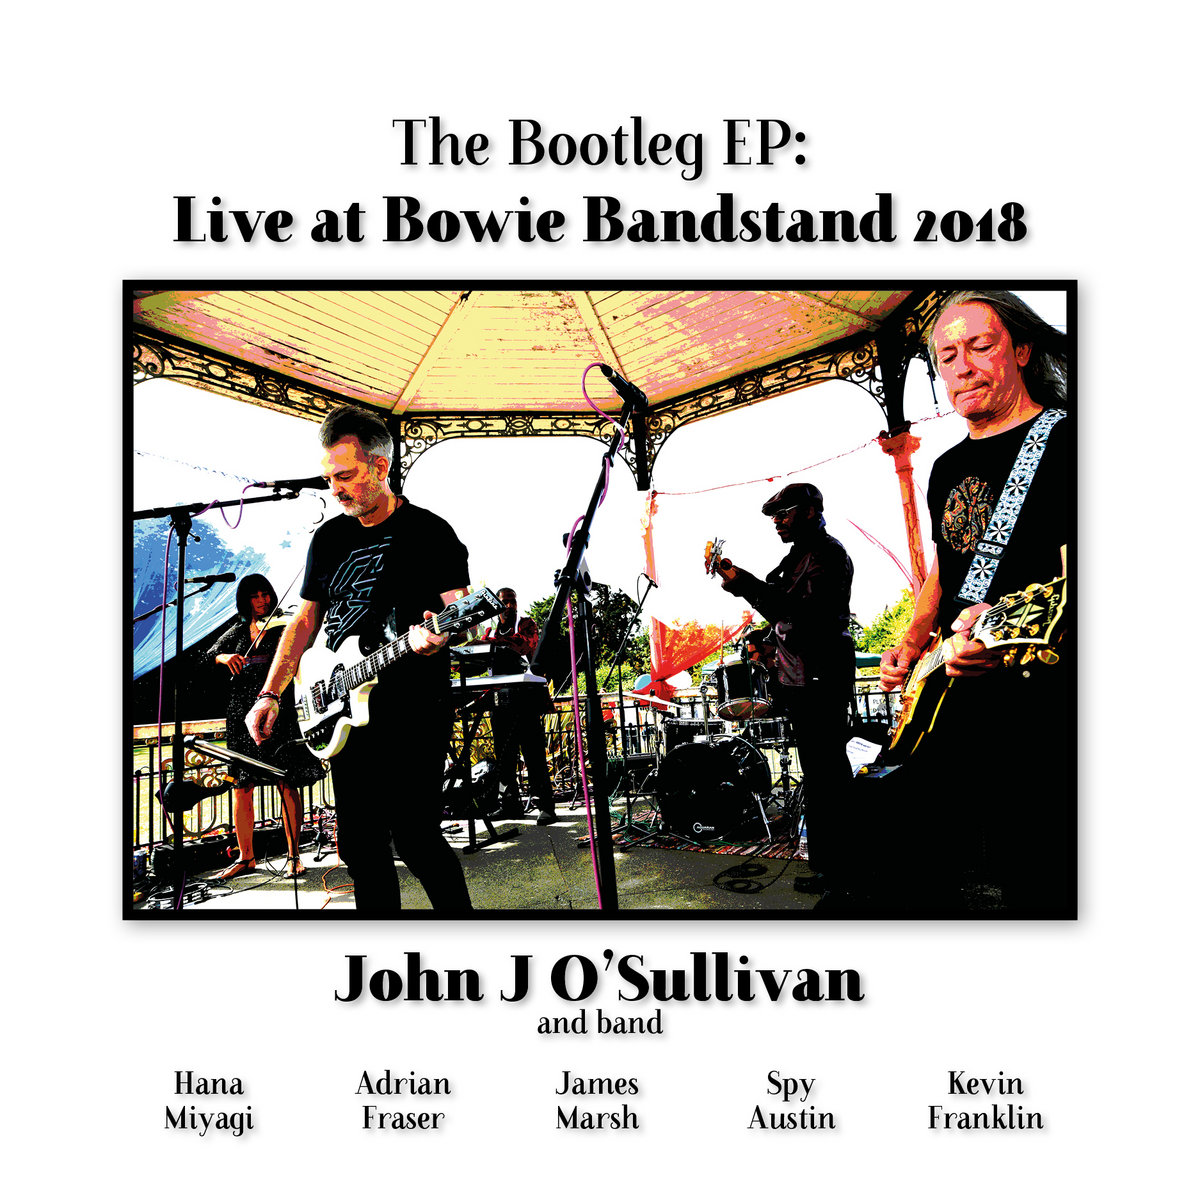 FREE! The Bootleg EP - Live at Bowie Bandstand 2018 | John J O'Sullivan